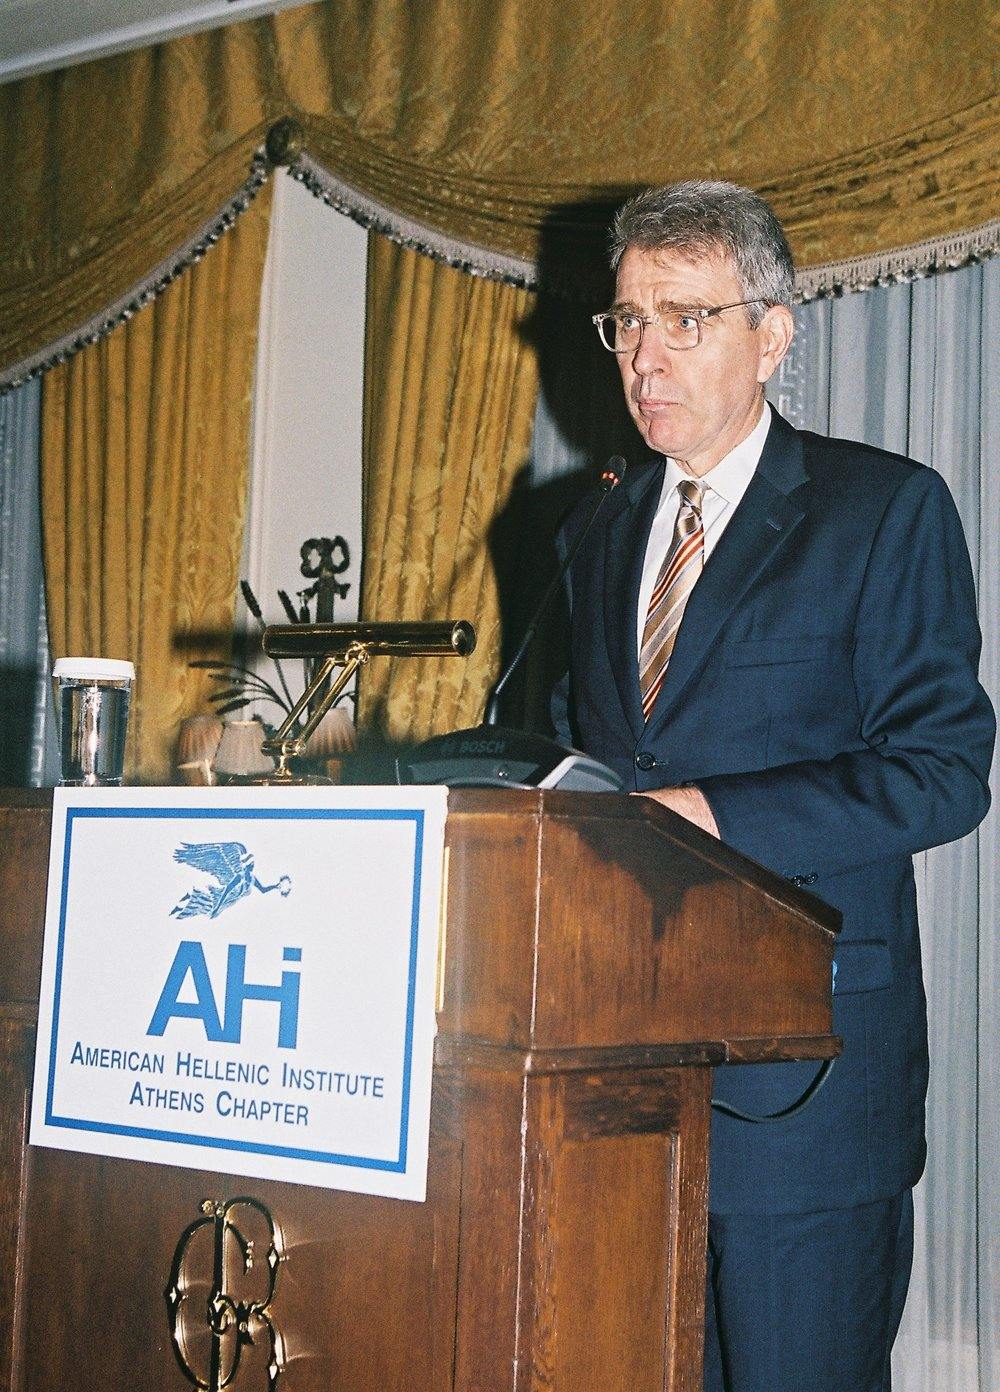 Ambassador Geoffrey Pyatt, U.S. Ambassador to Greece presents the Keynote Address.